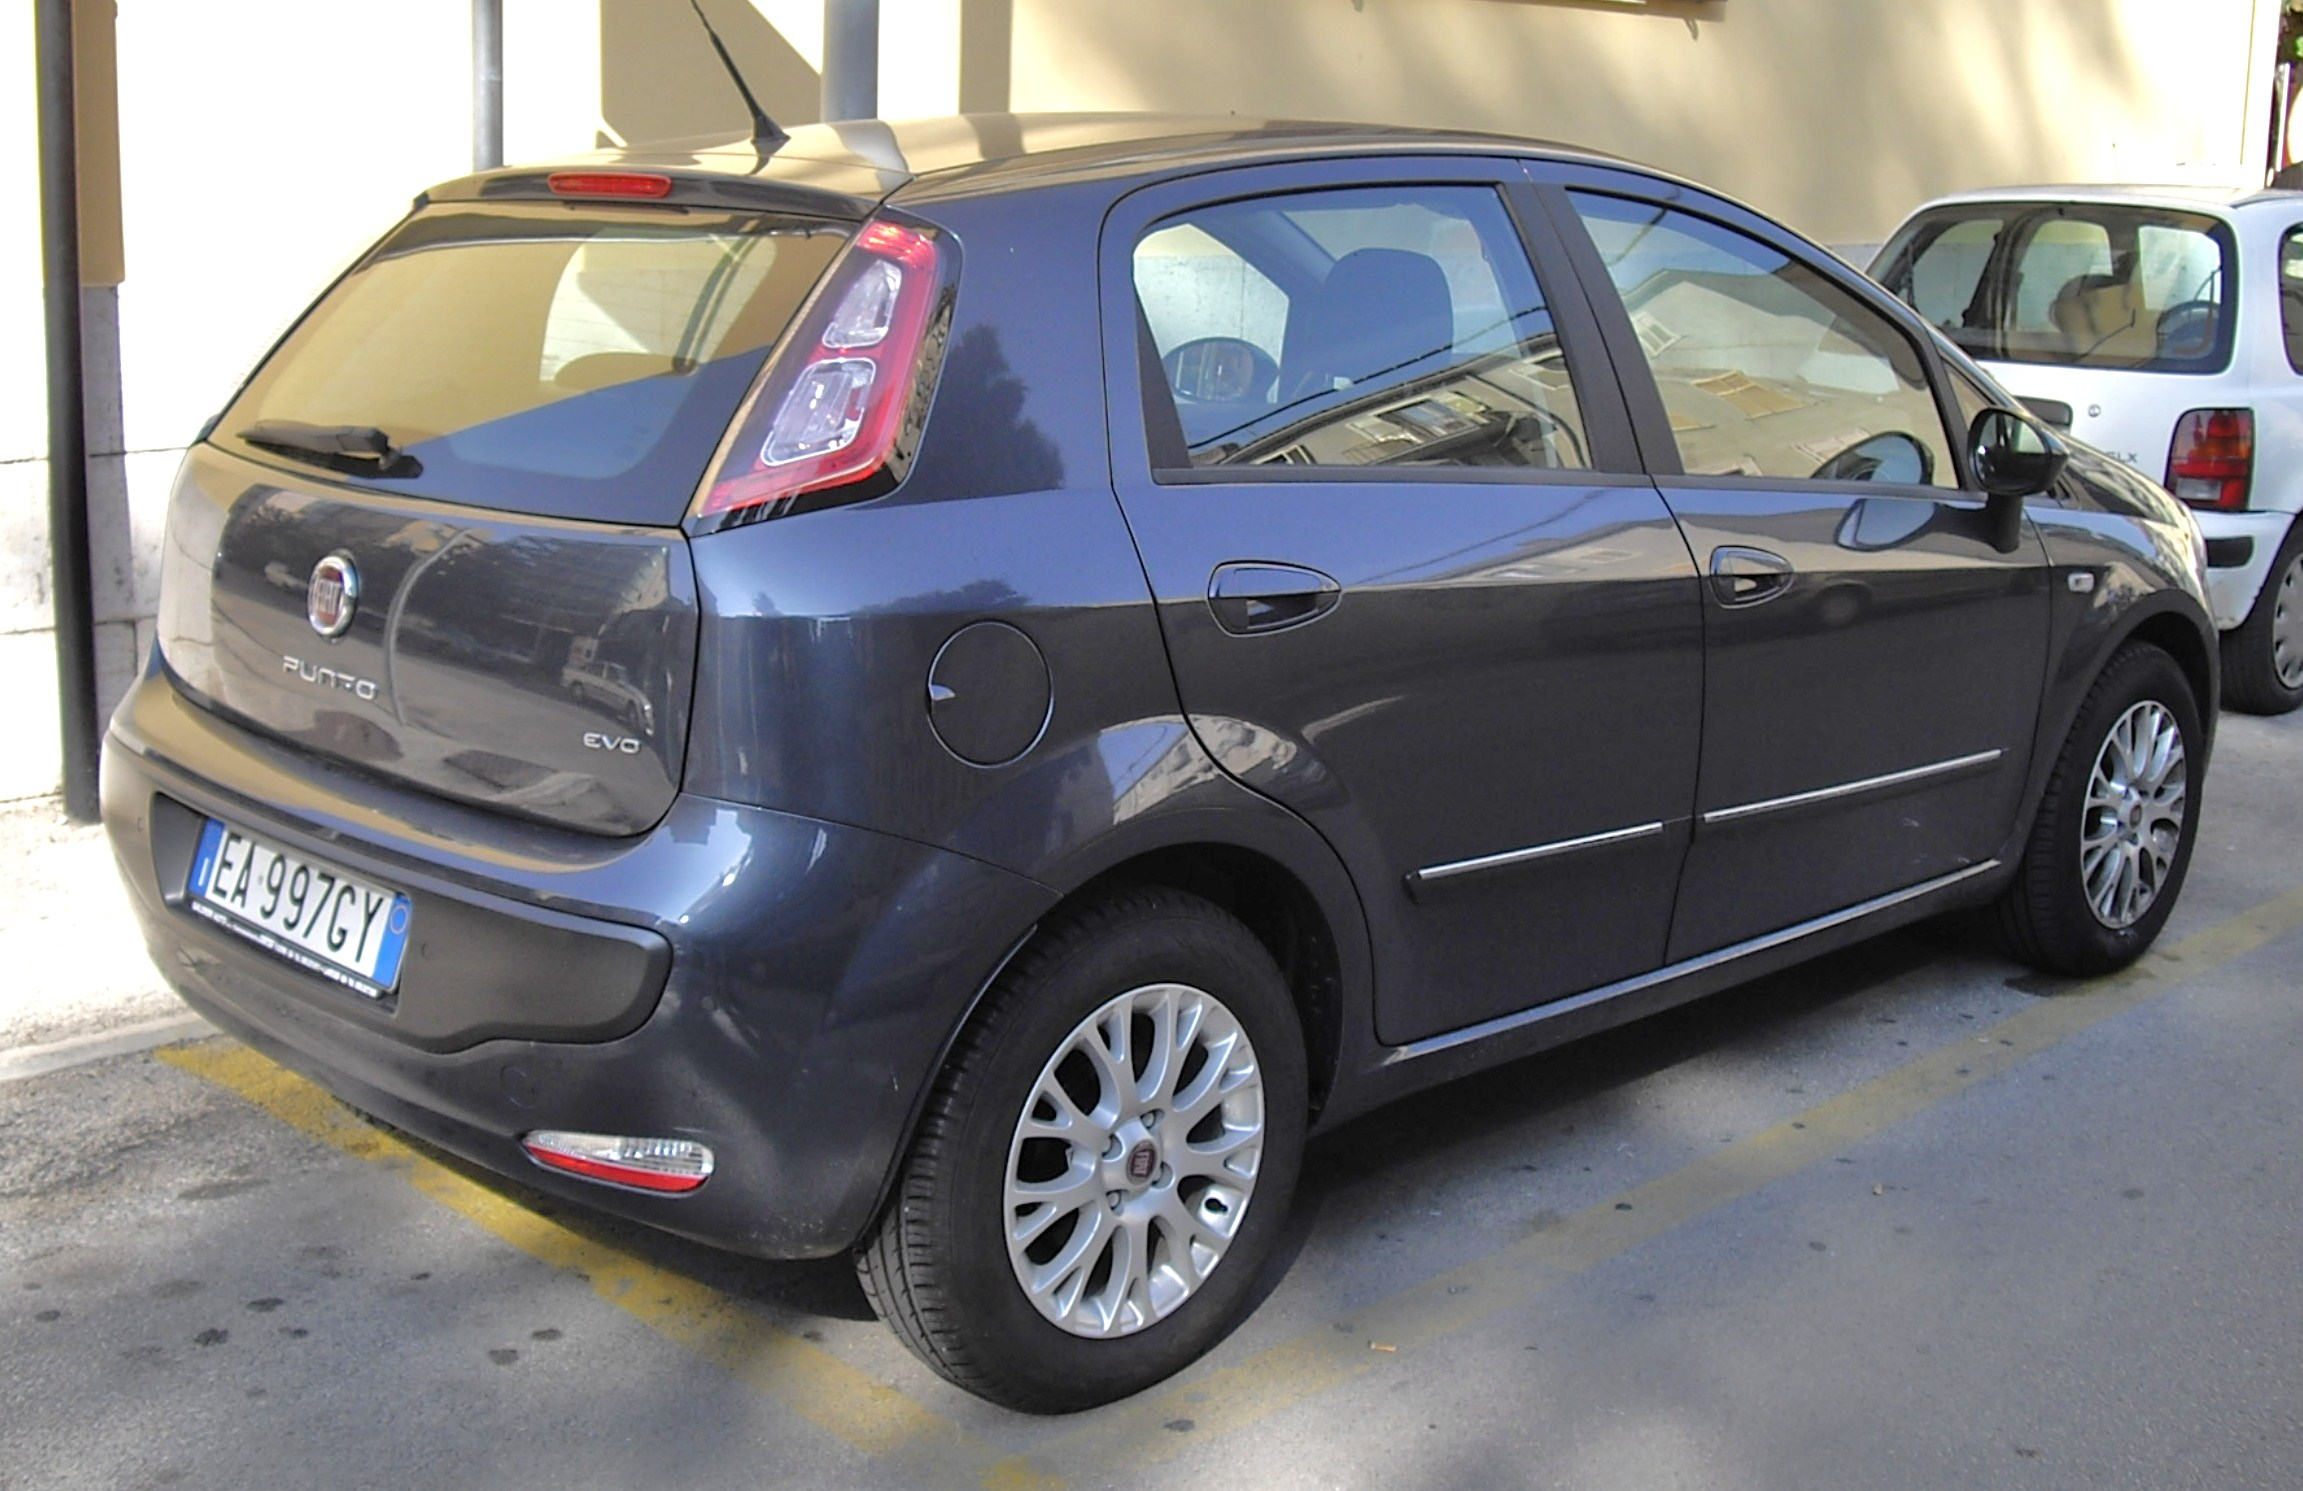 file 2010 fiat punto evo grey rear jpg wikimedia commons. Black Bedroom Furniture Sets. Home Design Ideas